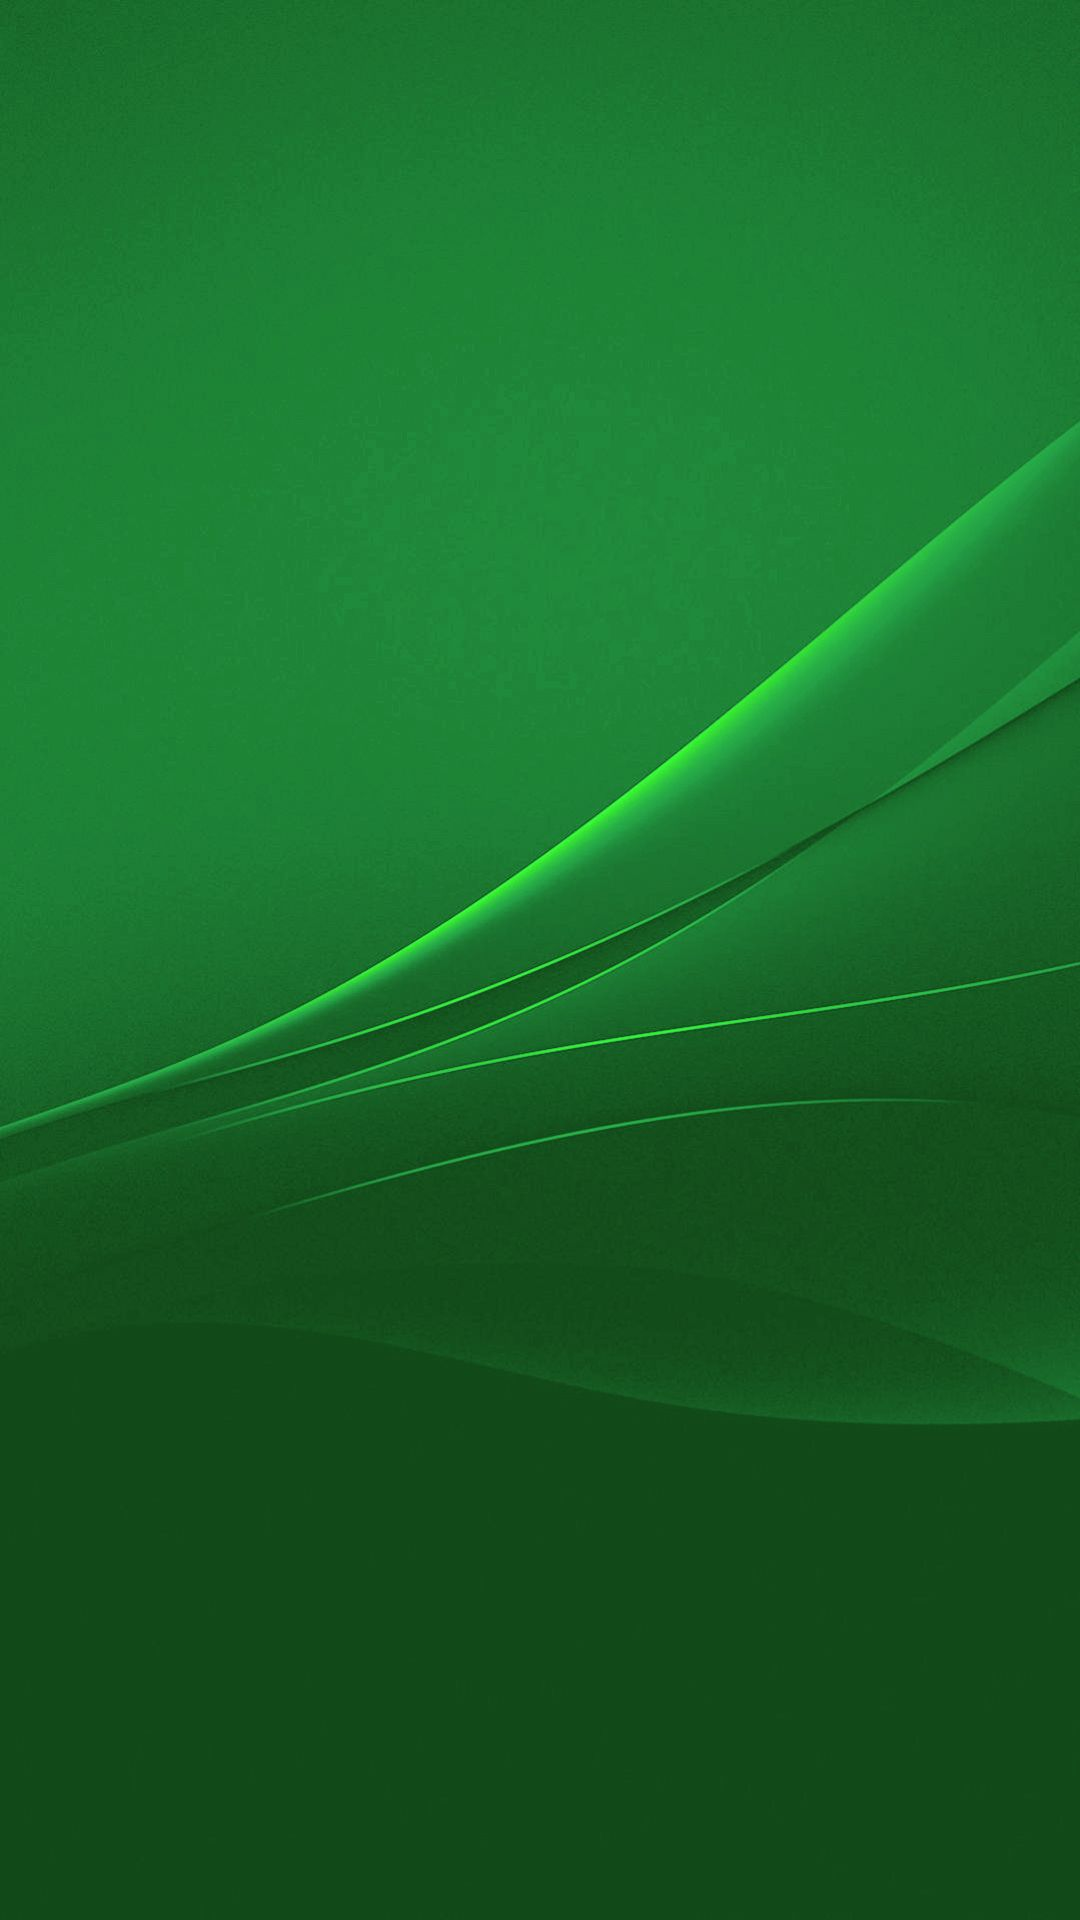 Download official Xperia Z4/Z3+ Wallpapers | Green ...